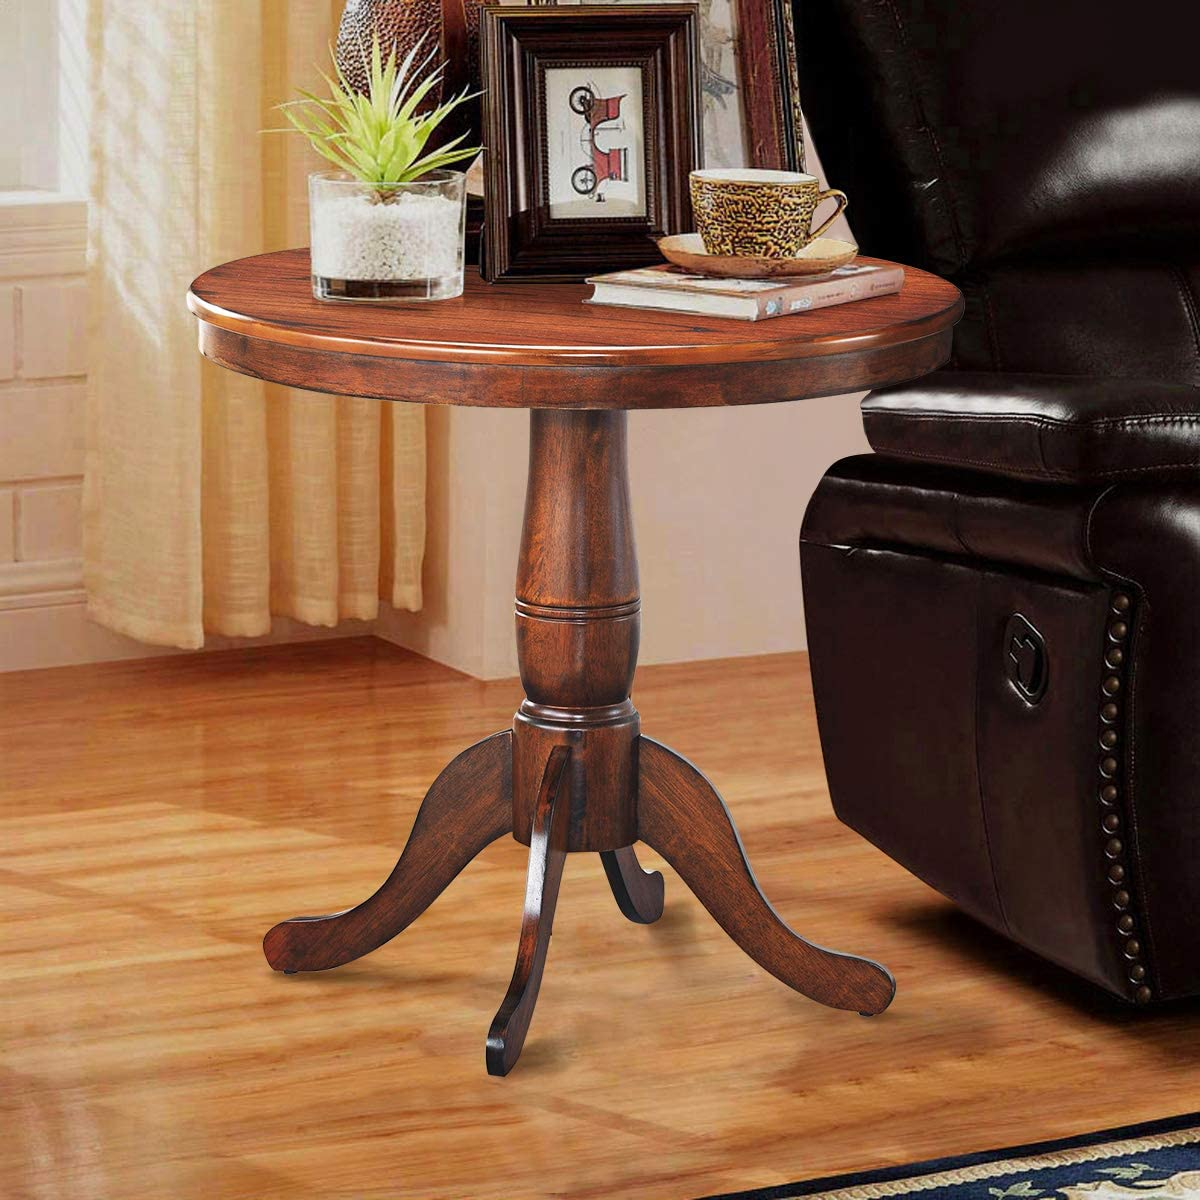 Giantex Table 30 Wooden Round Pub Pedestal Side Table